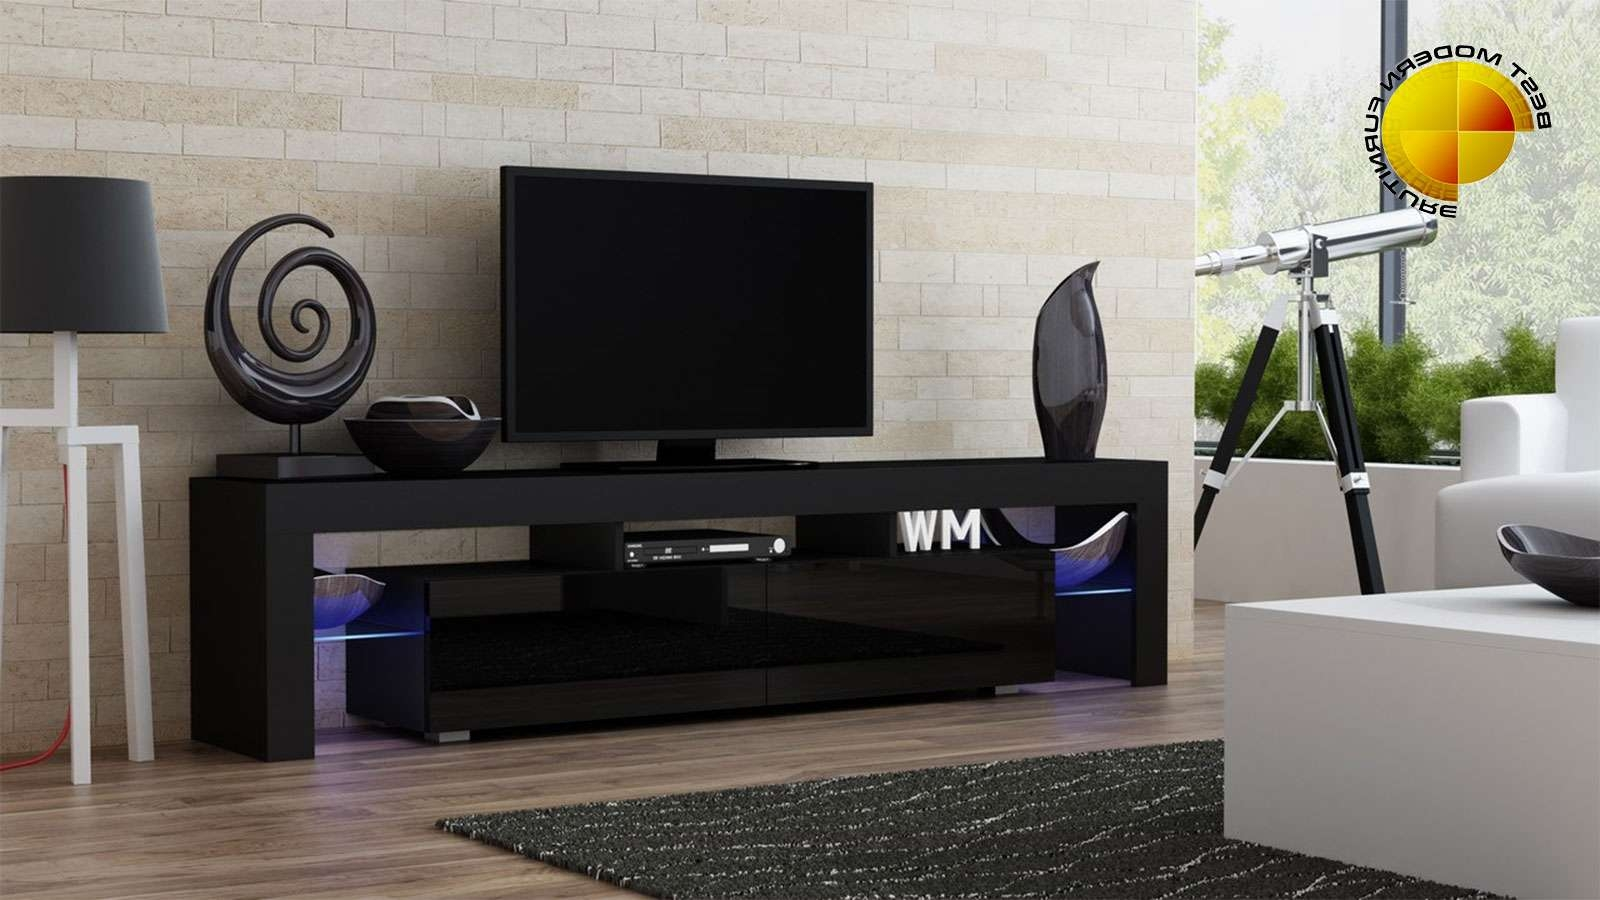 Modern Tv Stand 200cm High Gloss Cabinet Rgb Led Lights Black Unit Intended For White And Black Tv Stands (View 10 of 15)